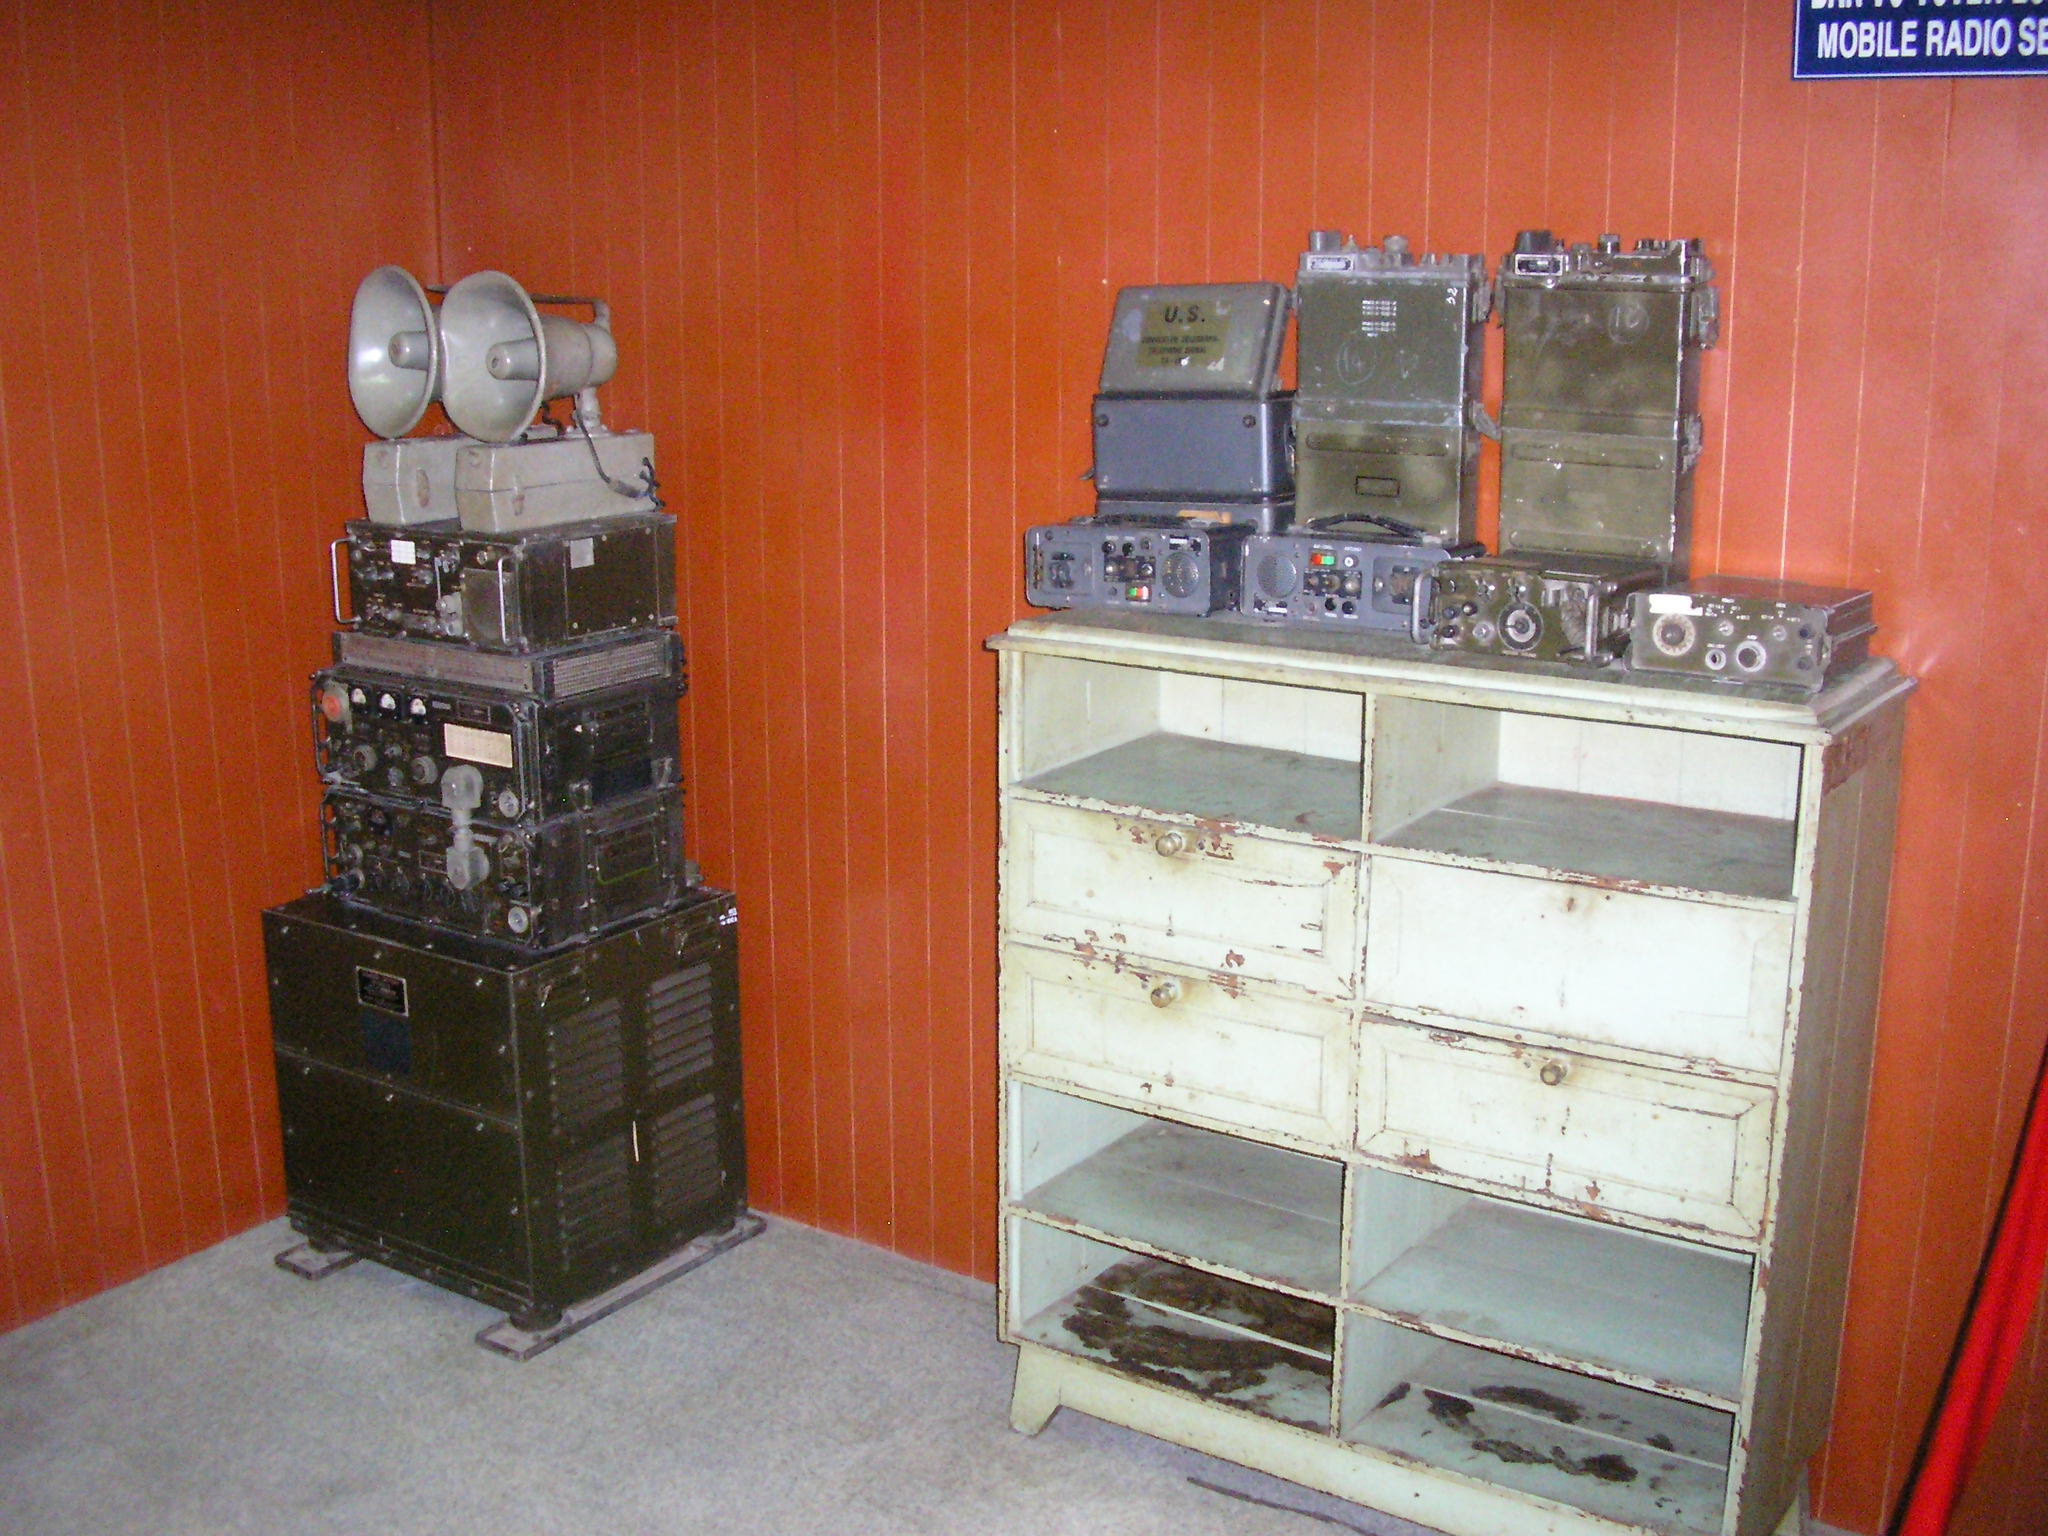 PRC-10 and other radios captured by the Viet Cong/NVA